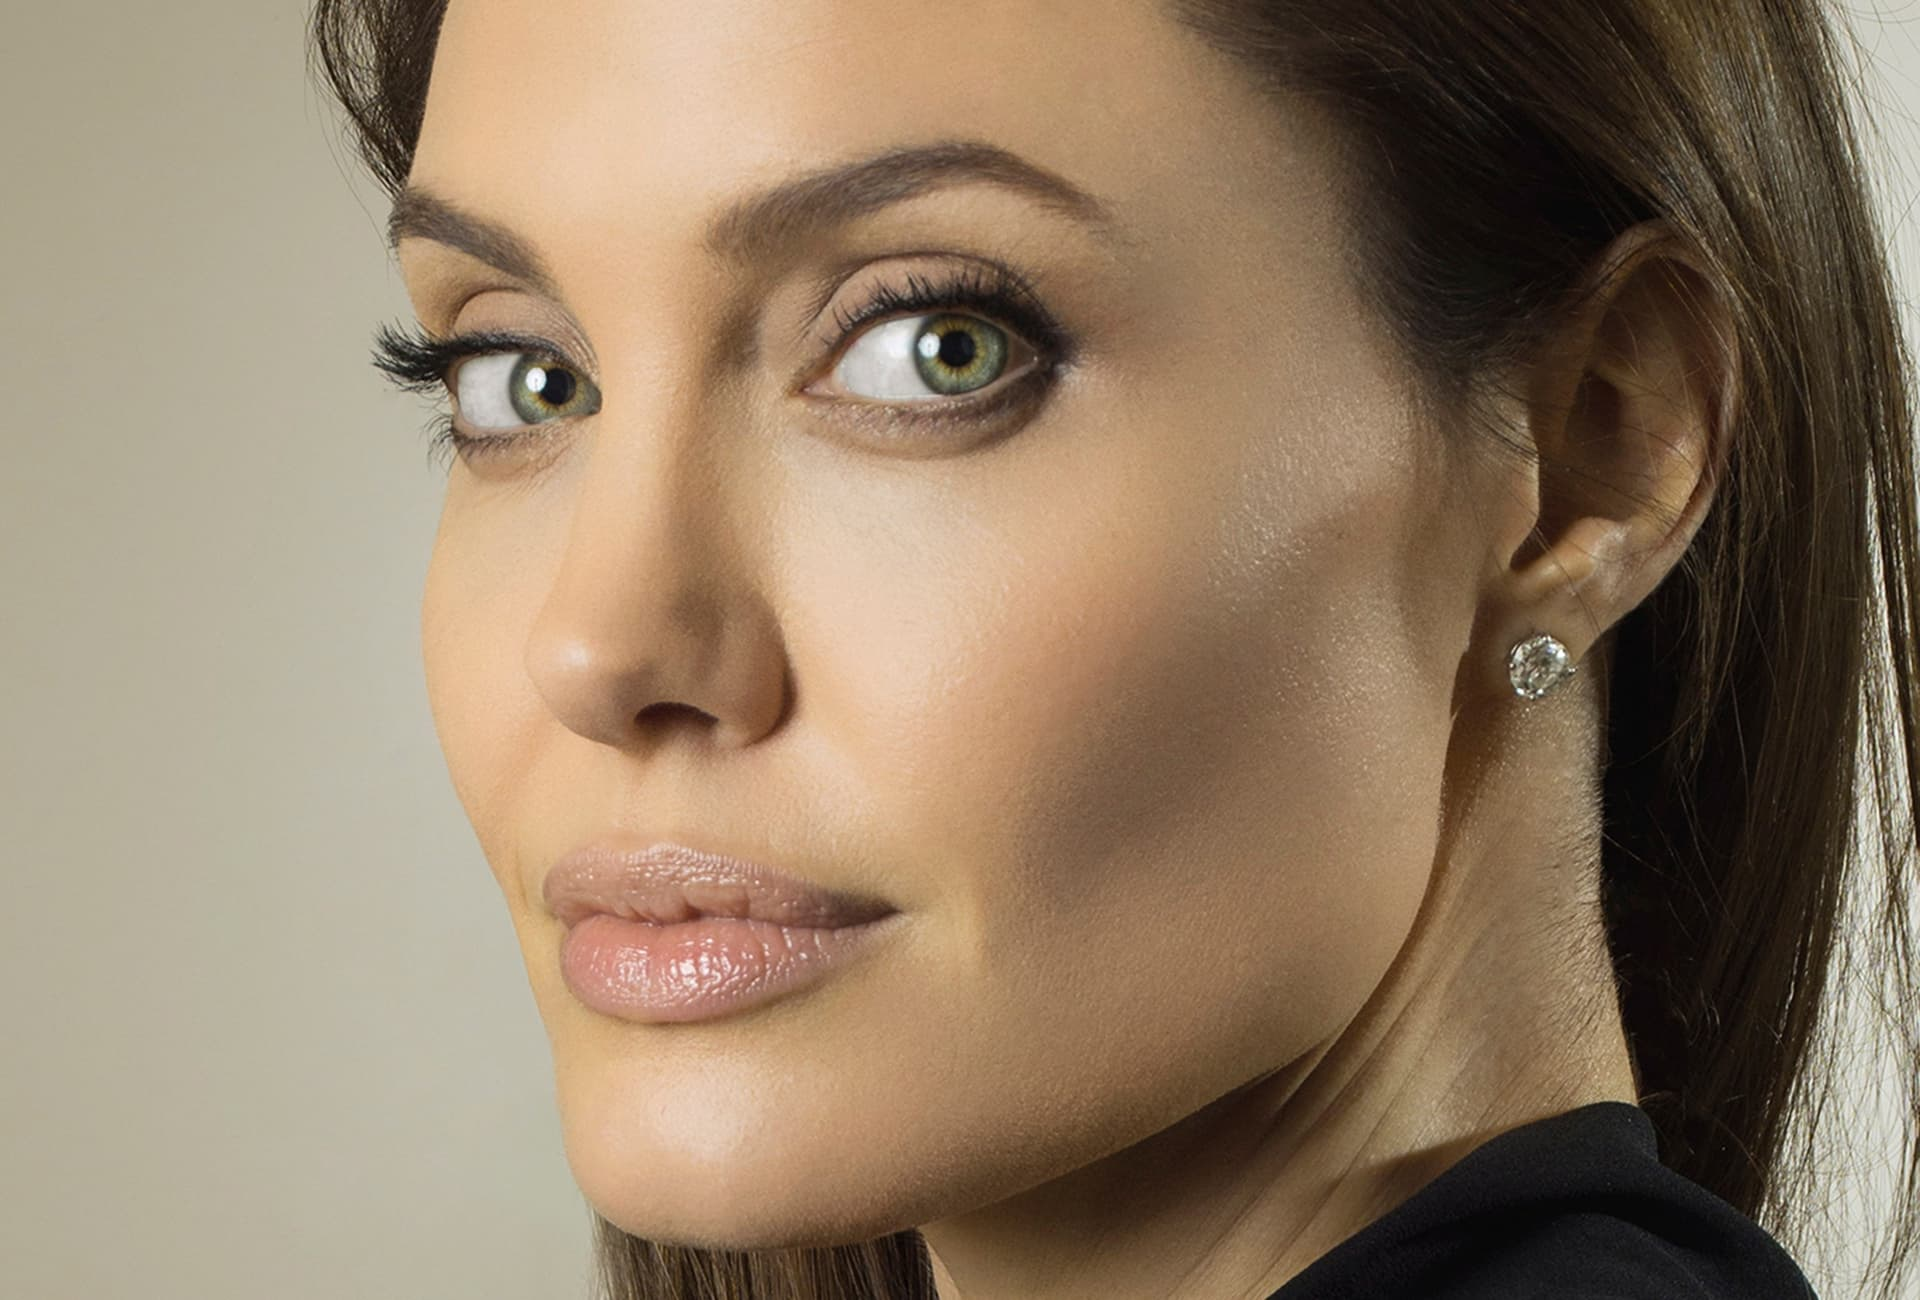 Angelina Jolie wallpapers backgrounds eyes